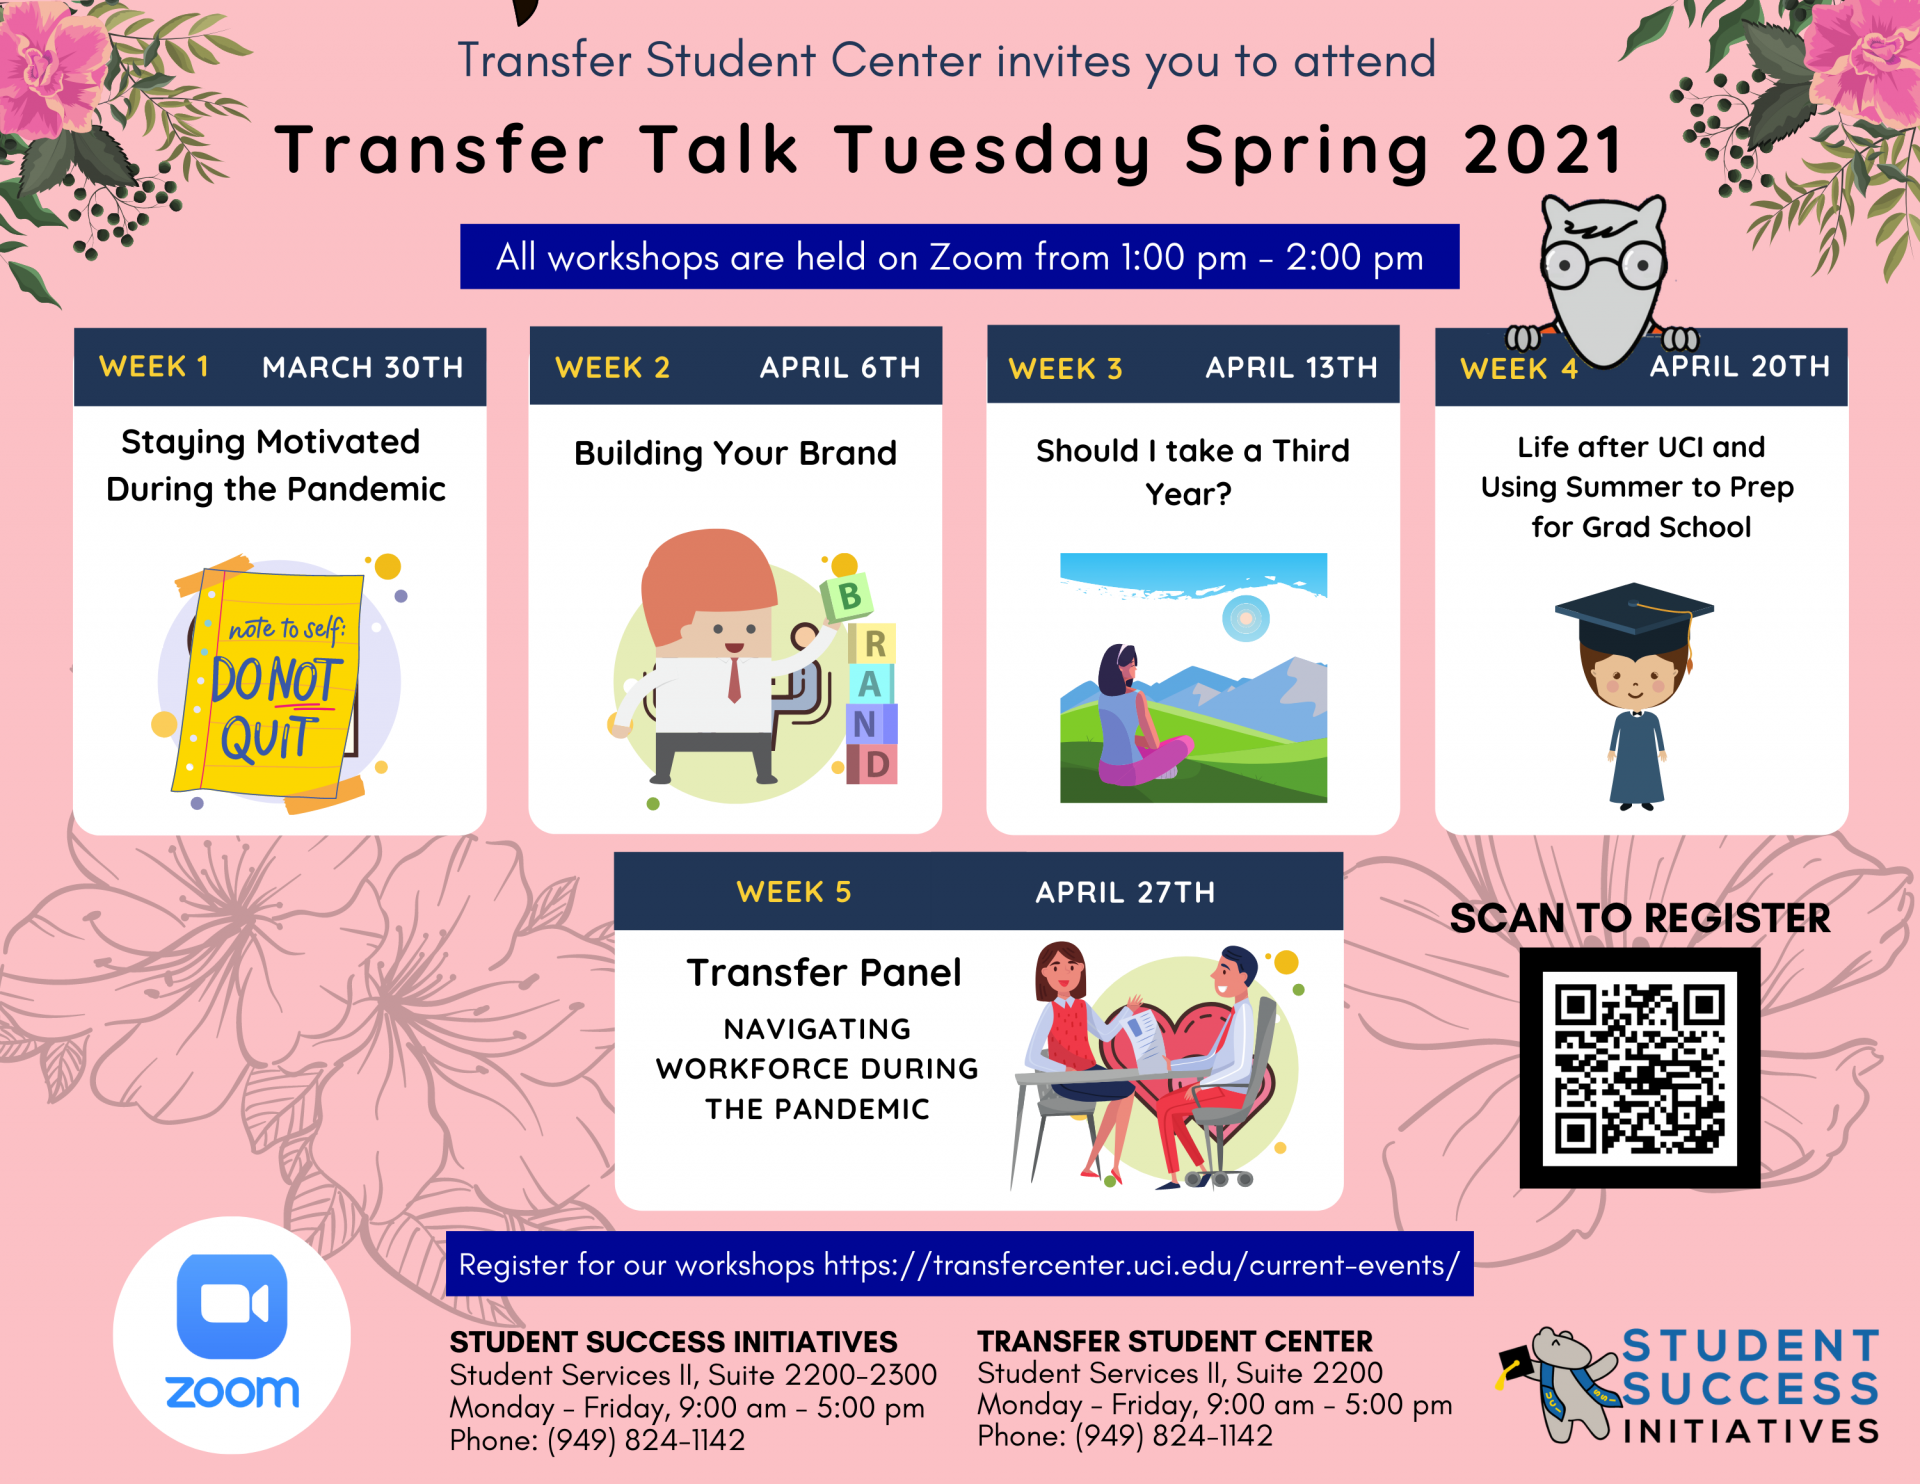 Transfer Talk Tuesday Spring 2021 Events